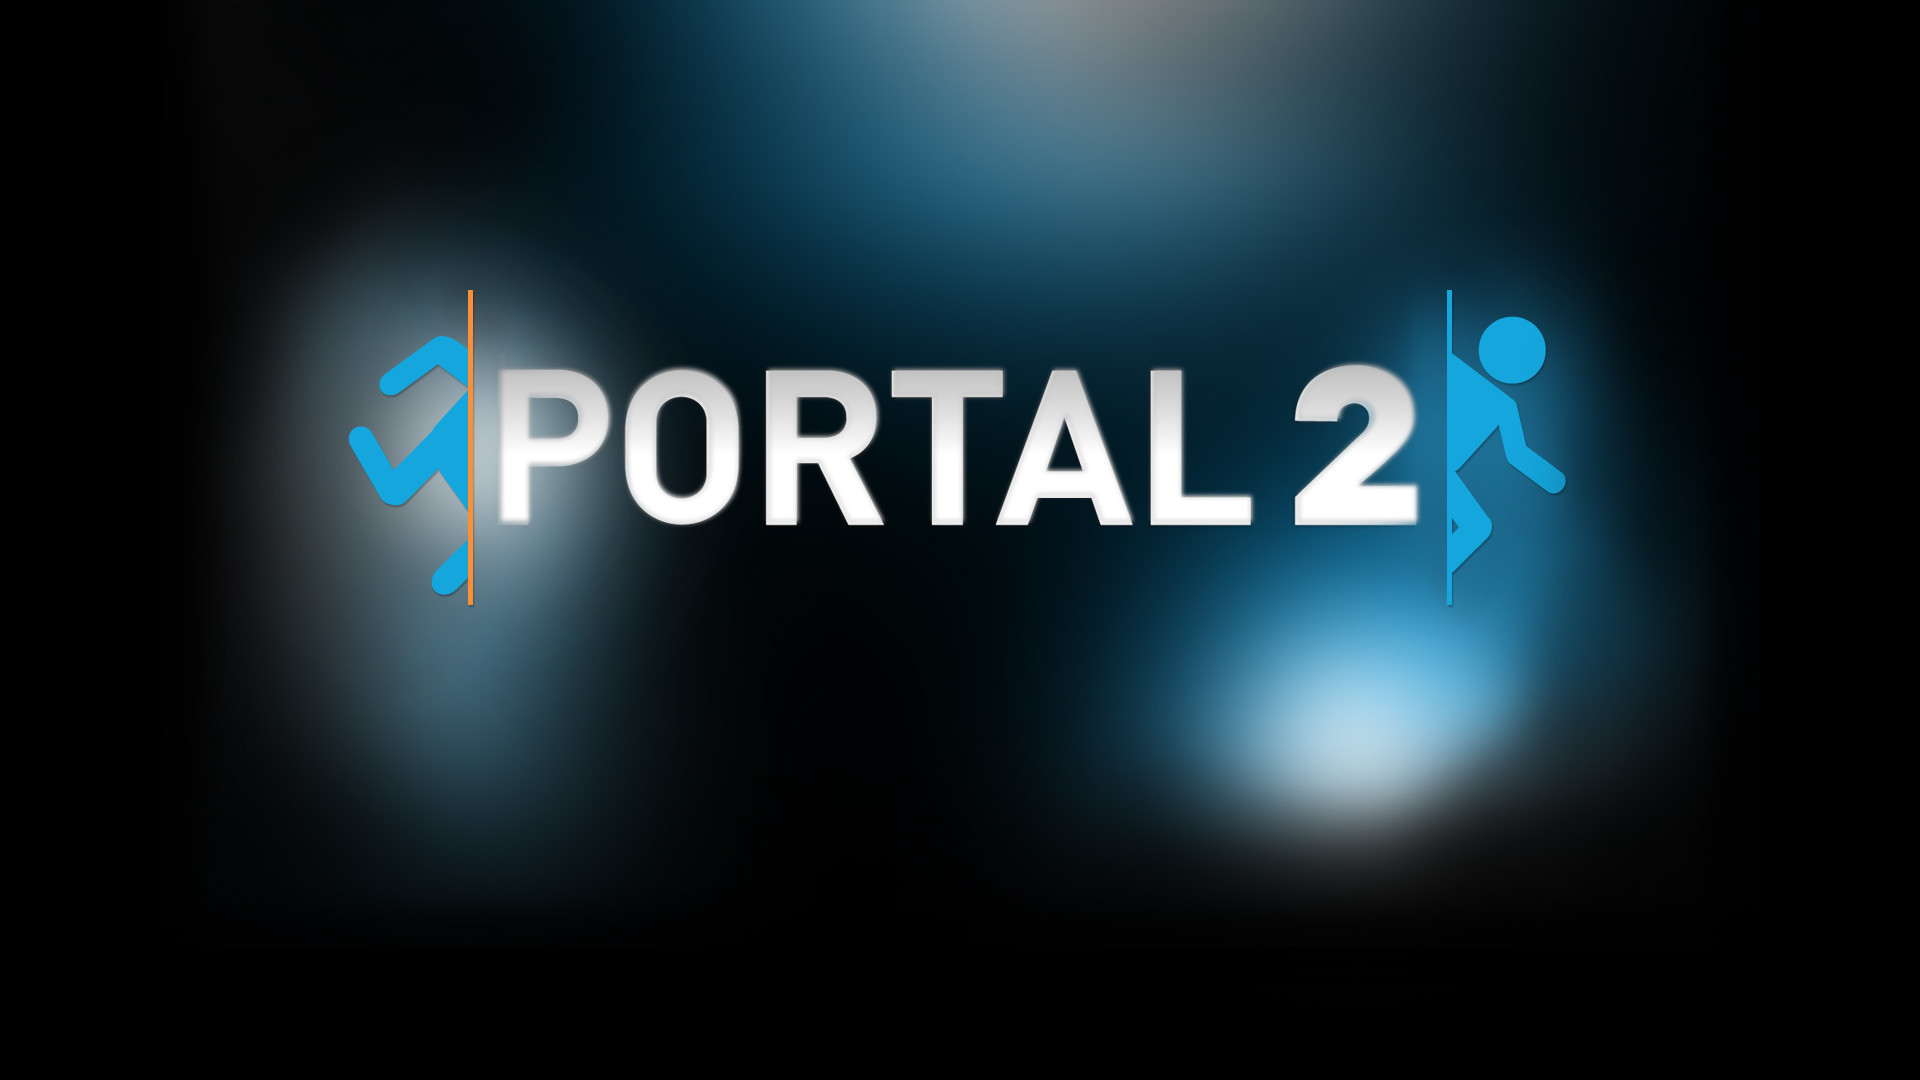 1920x1080 Portal 2 Profile Background. View Full Size